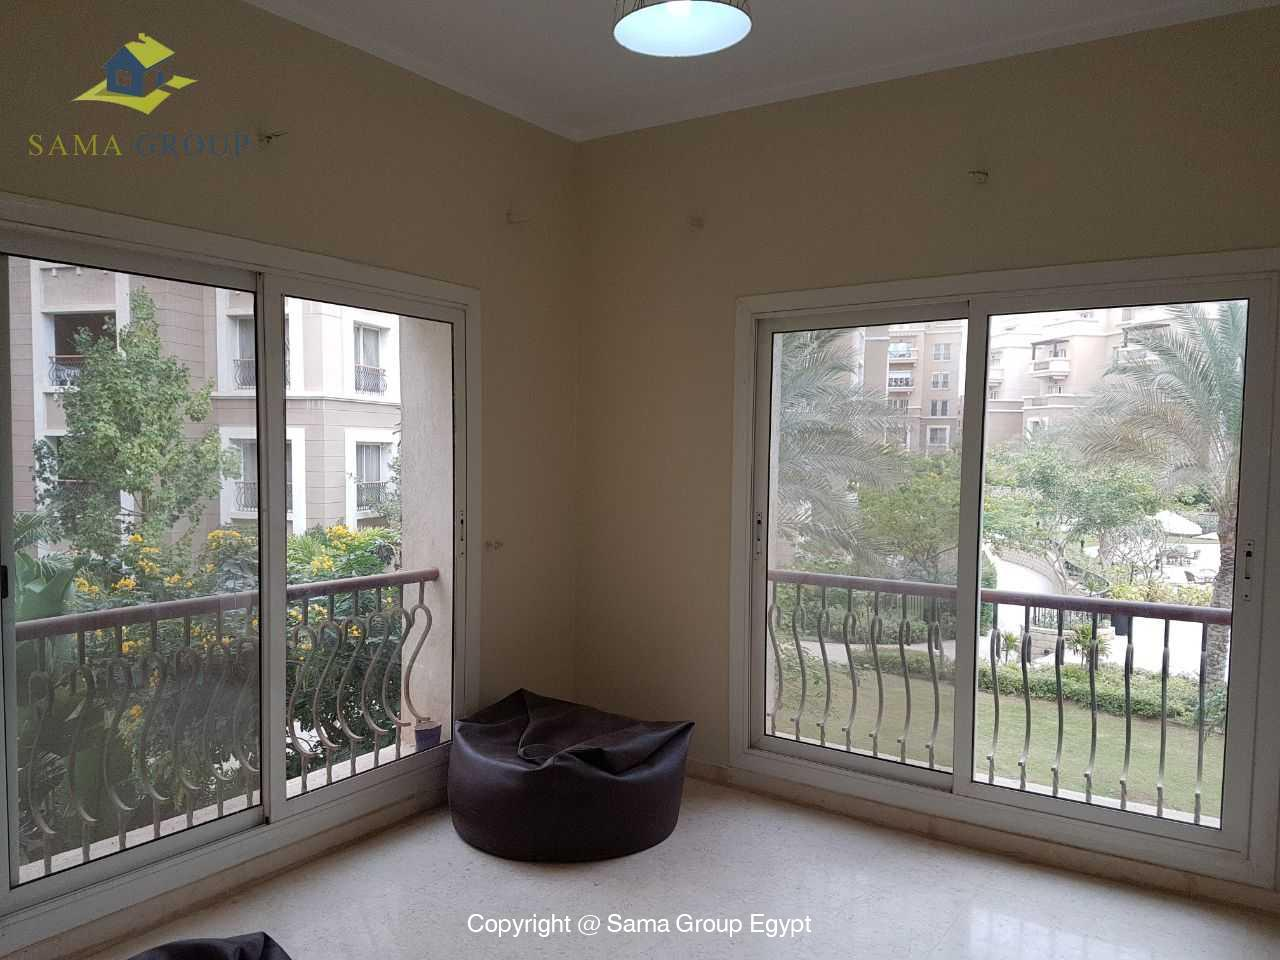 Furnished Apartment For Rent In Katameya Plaza New Cairo,Modern Furnished,Apartment NO #4